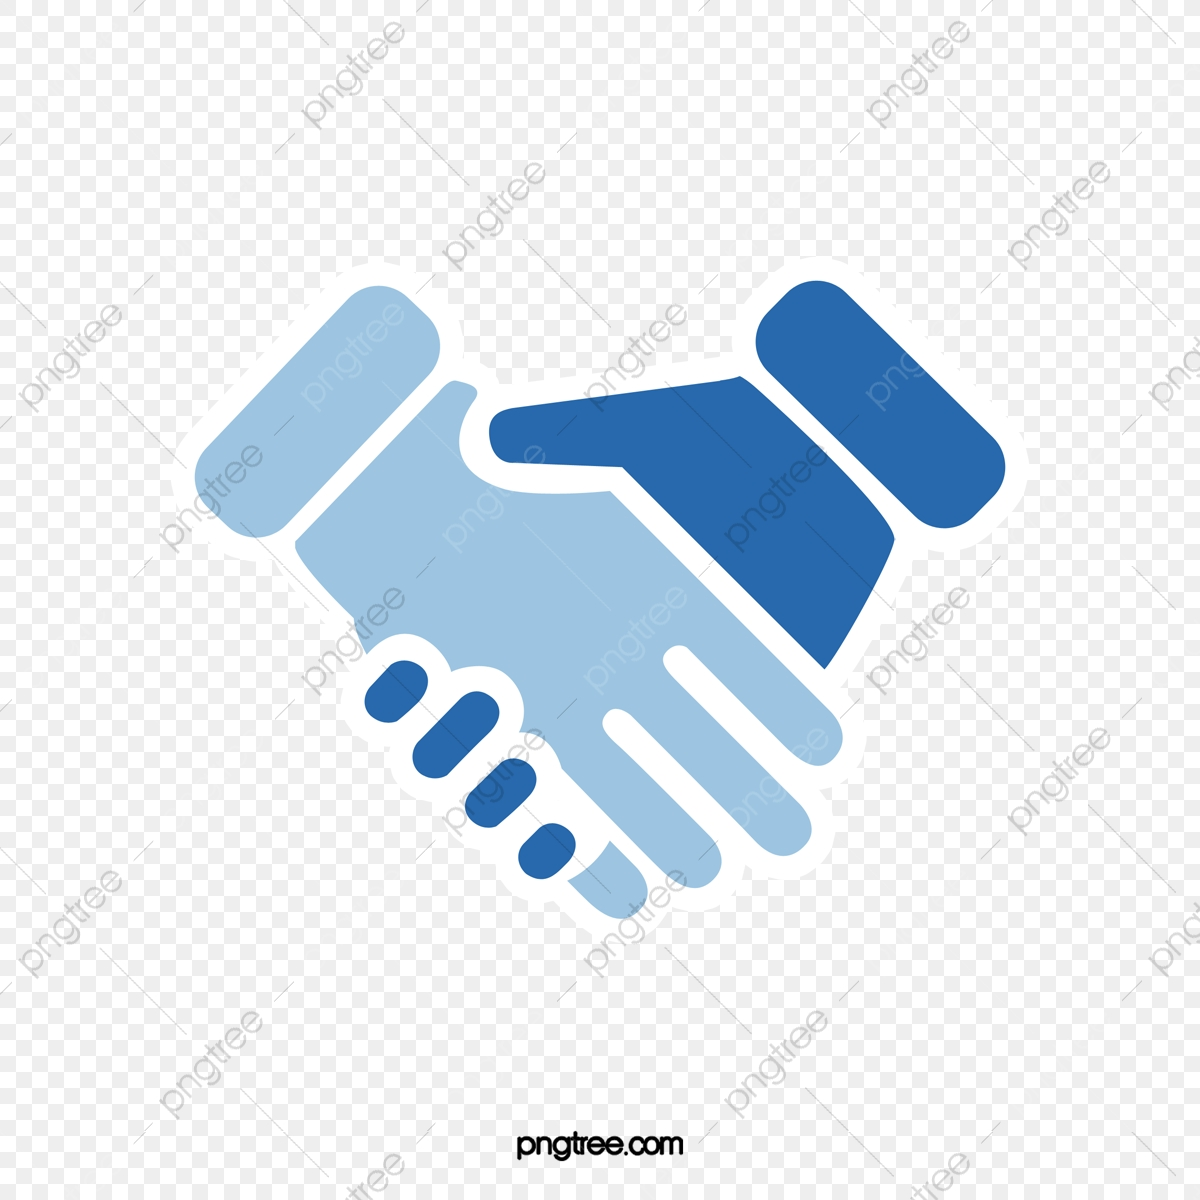 Handshake Stickers Handshake Clipart Shake Hands Business Man Png Transparent Clipart Image And Psd File For Free Download Download free hands png images. https pngtree com freepng handshake stickers 2817762 html